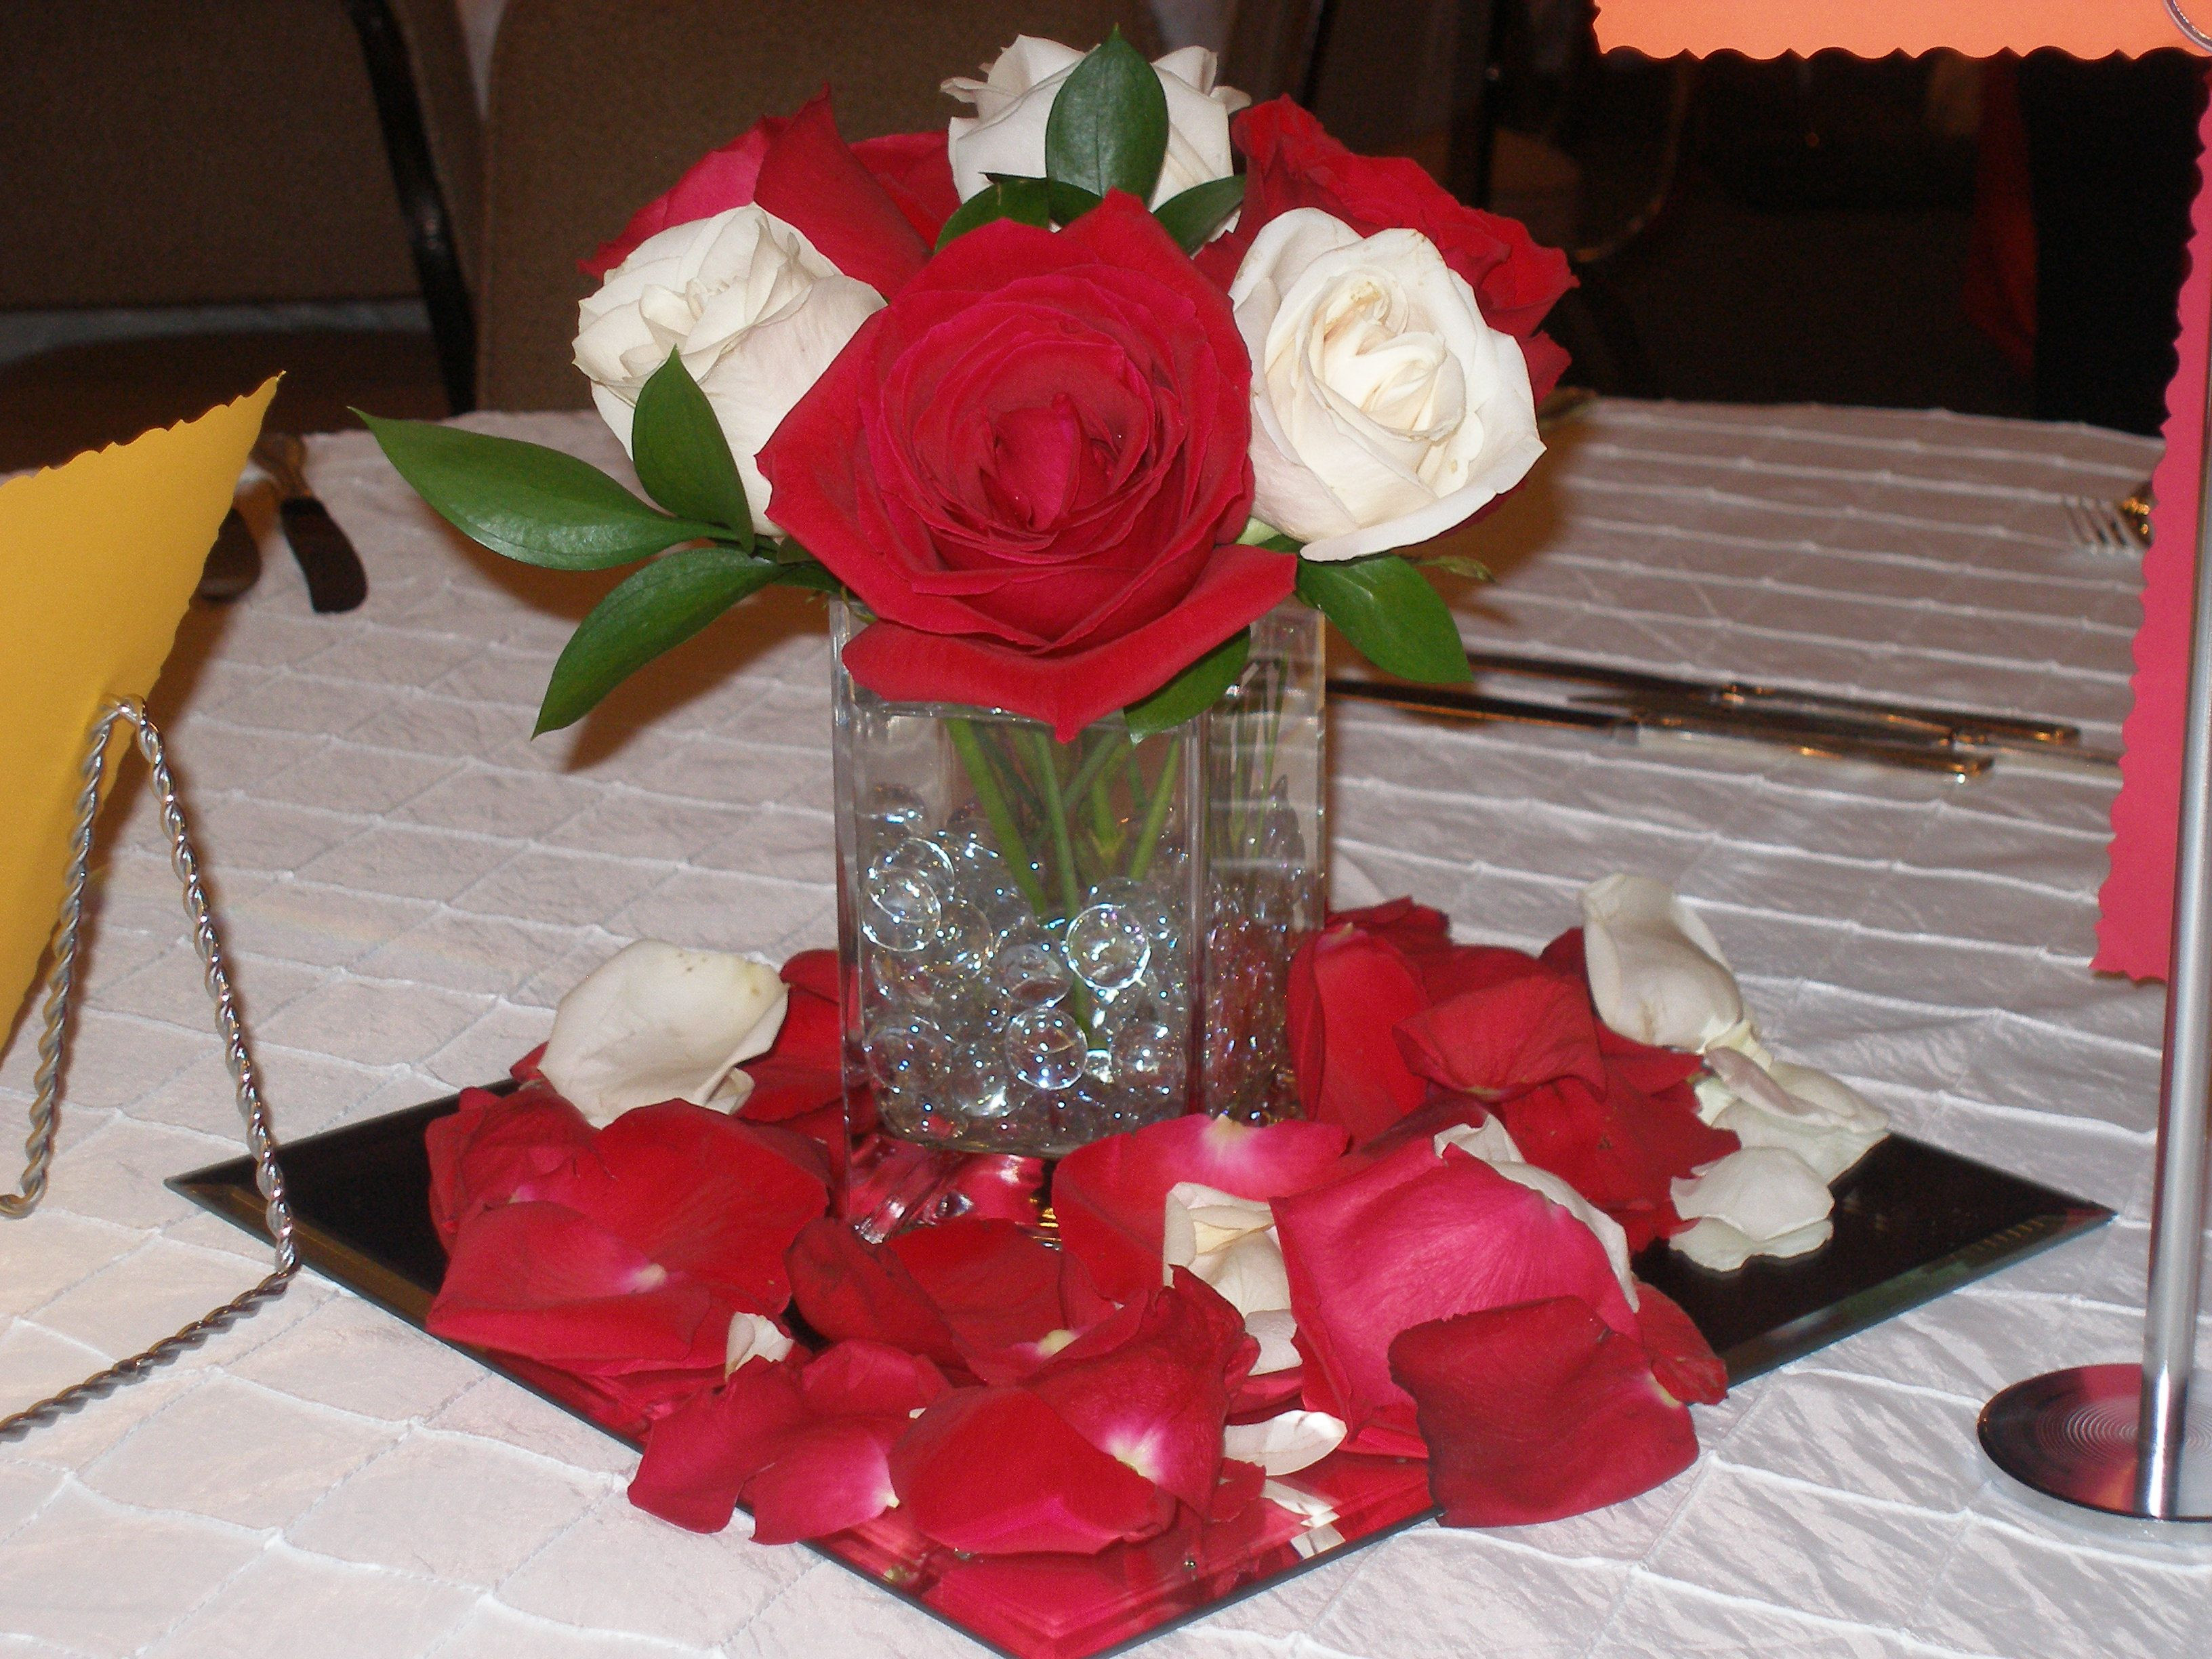 Red and white roses MyWeddingFlowers ShortCenterpieces Centerpieces WeddingReception